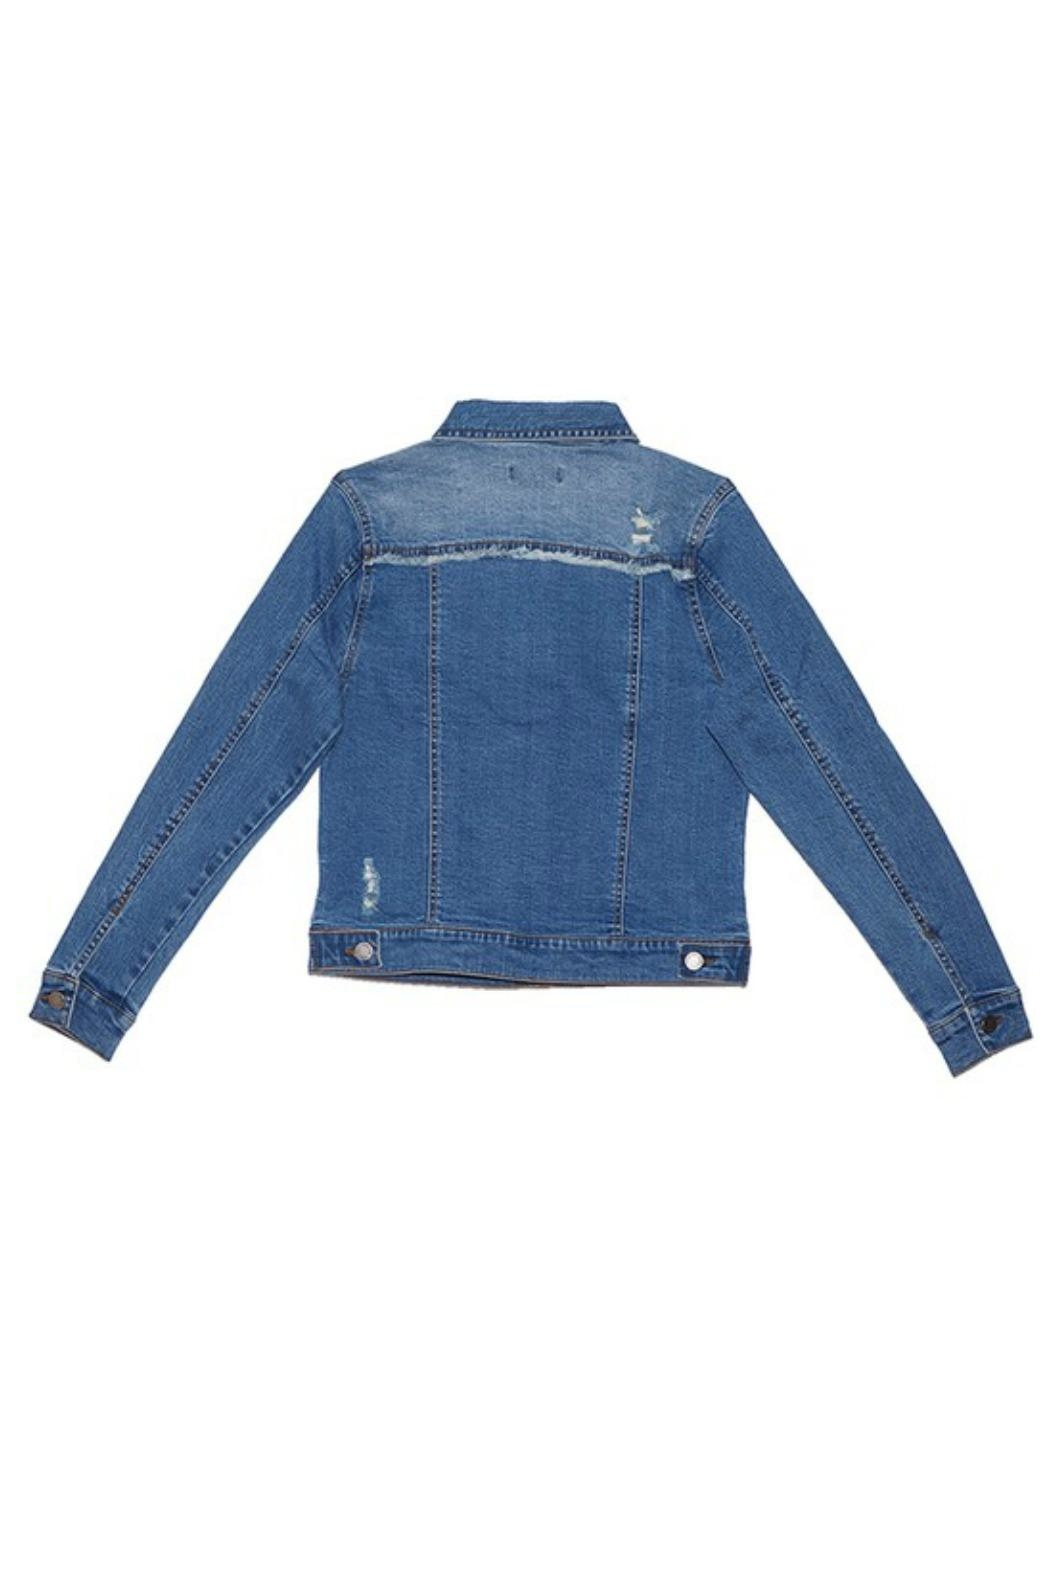 C'ESTTOI Distressed Multi Denim Jacket - Front Full Image